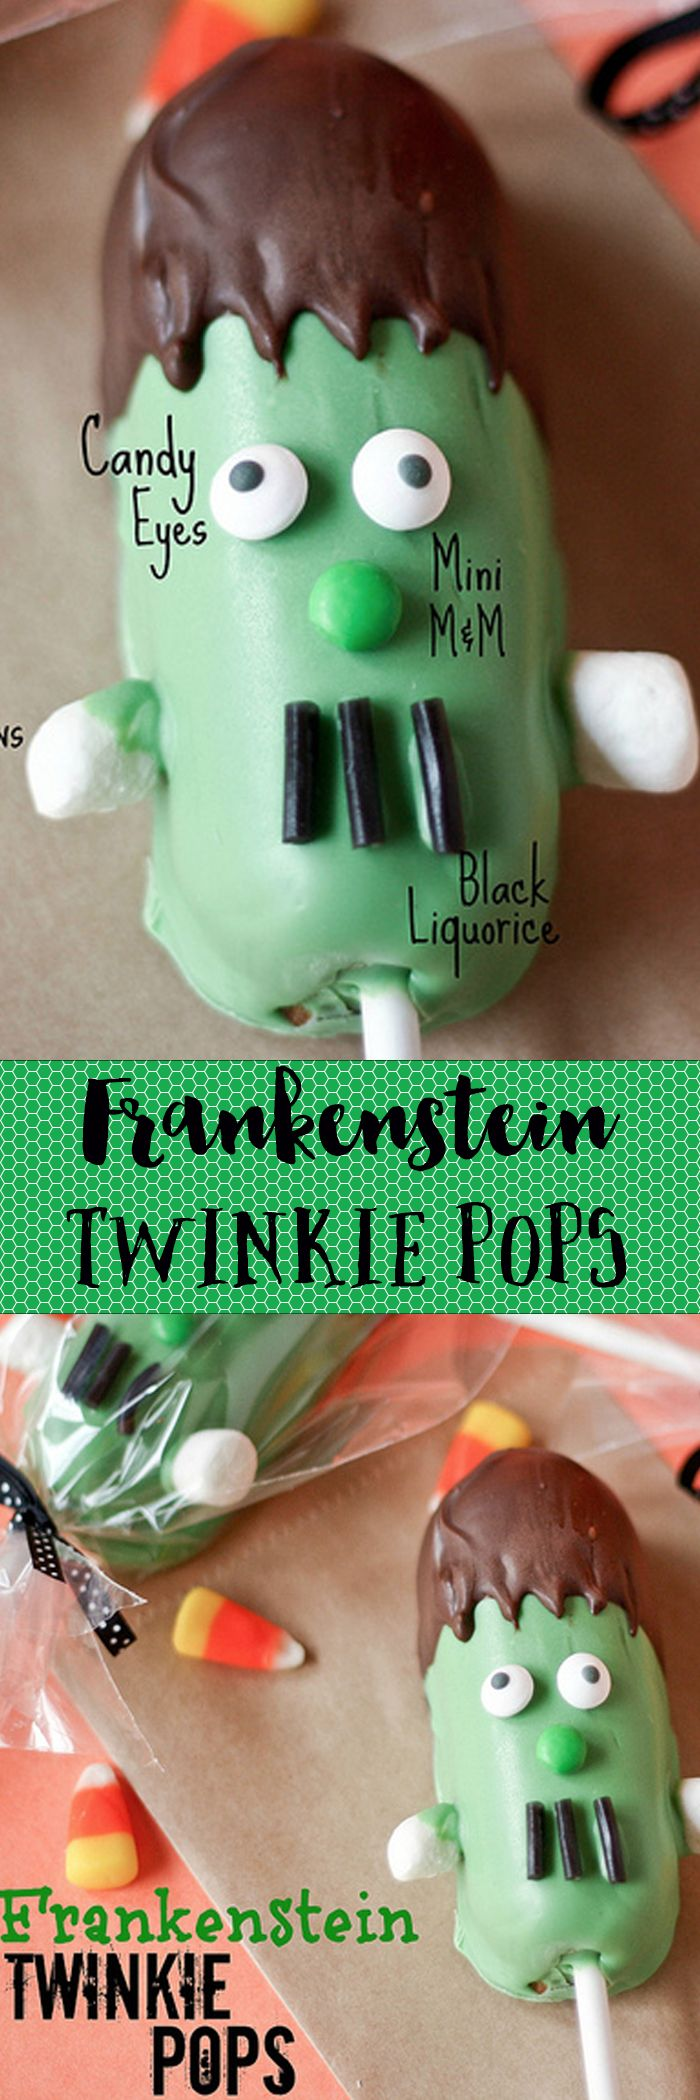 FRANKENSTEIN TWINKIE POPS!! Such a fun treat for Halloween. Perfect for bringing to class/giving to neighbors.